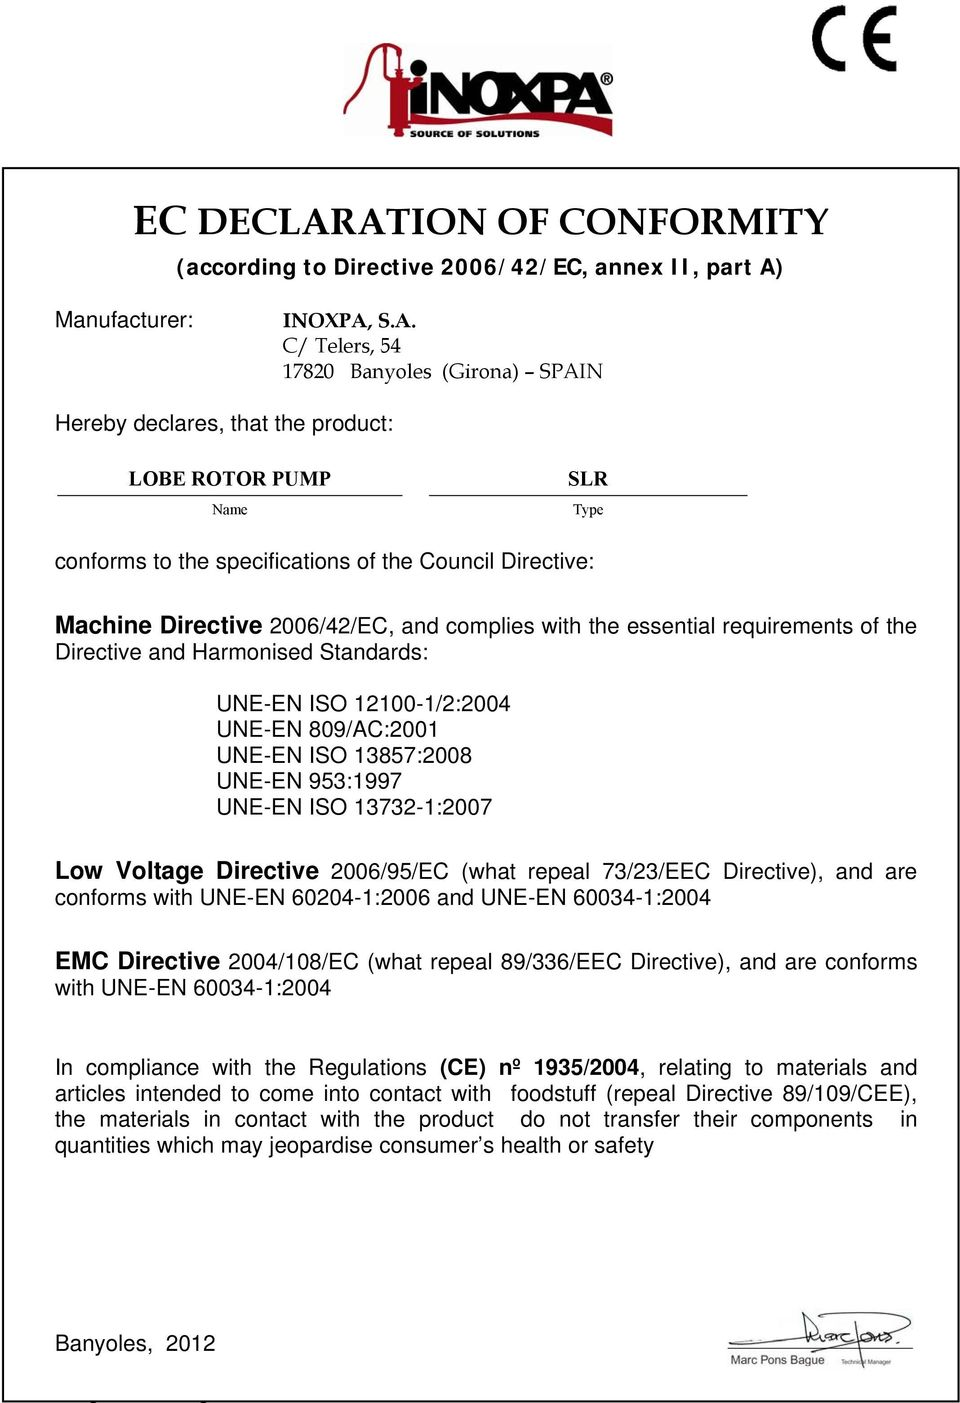 Name SLR Type conforms to the specifications of the Council Directive: Machine Directive 2006/42/EC, and complies with the essential requirements of the Directive and Harmonised Standards: UNE-EN ISO